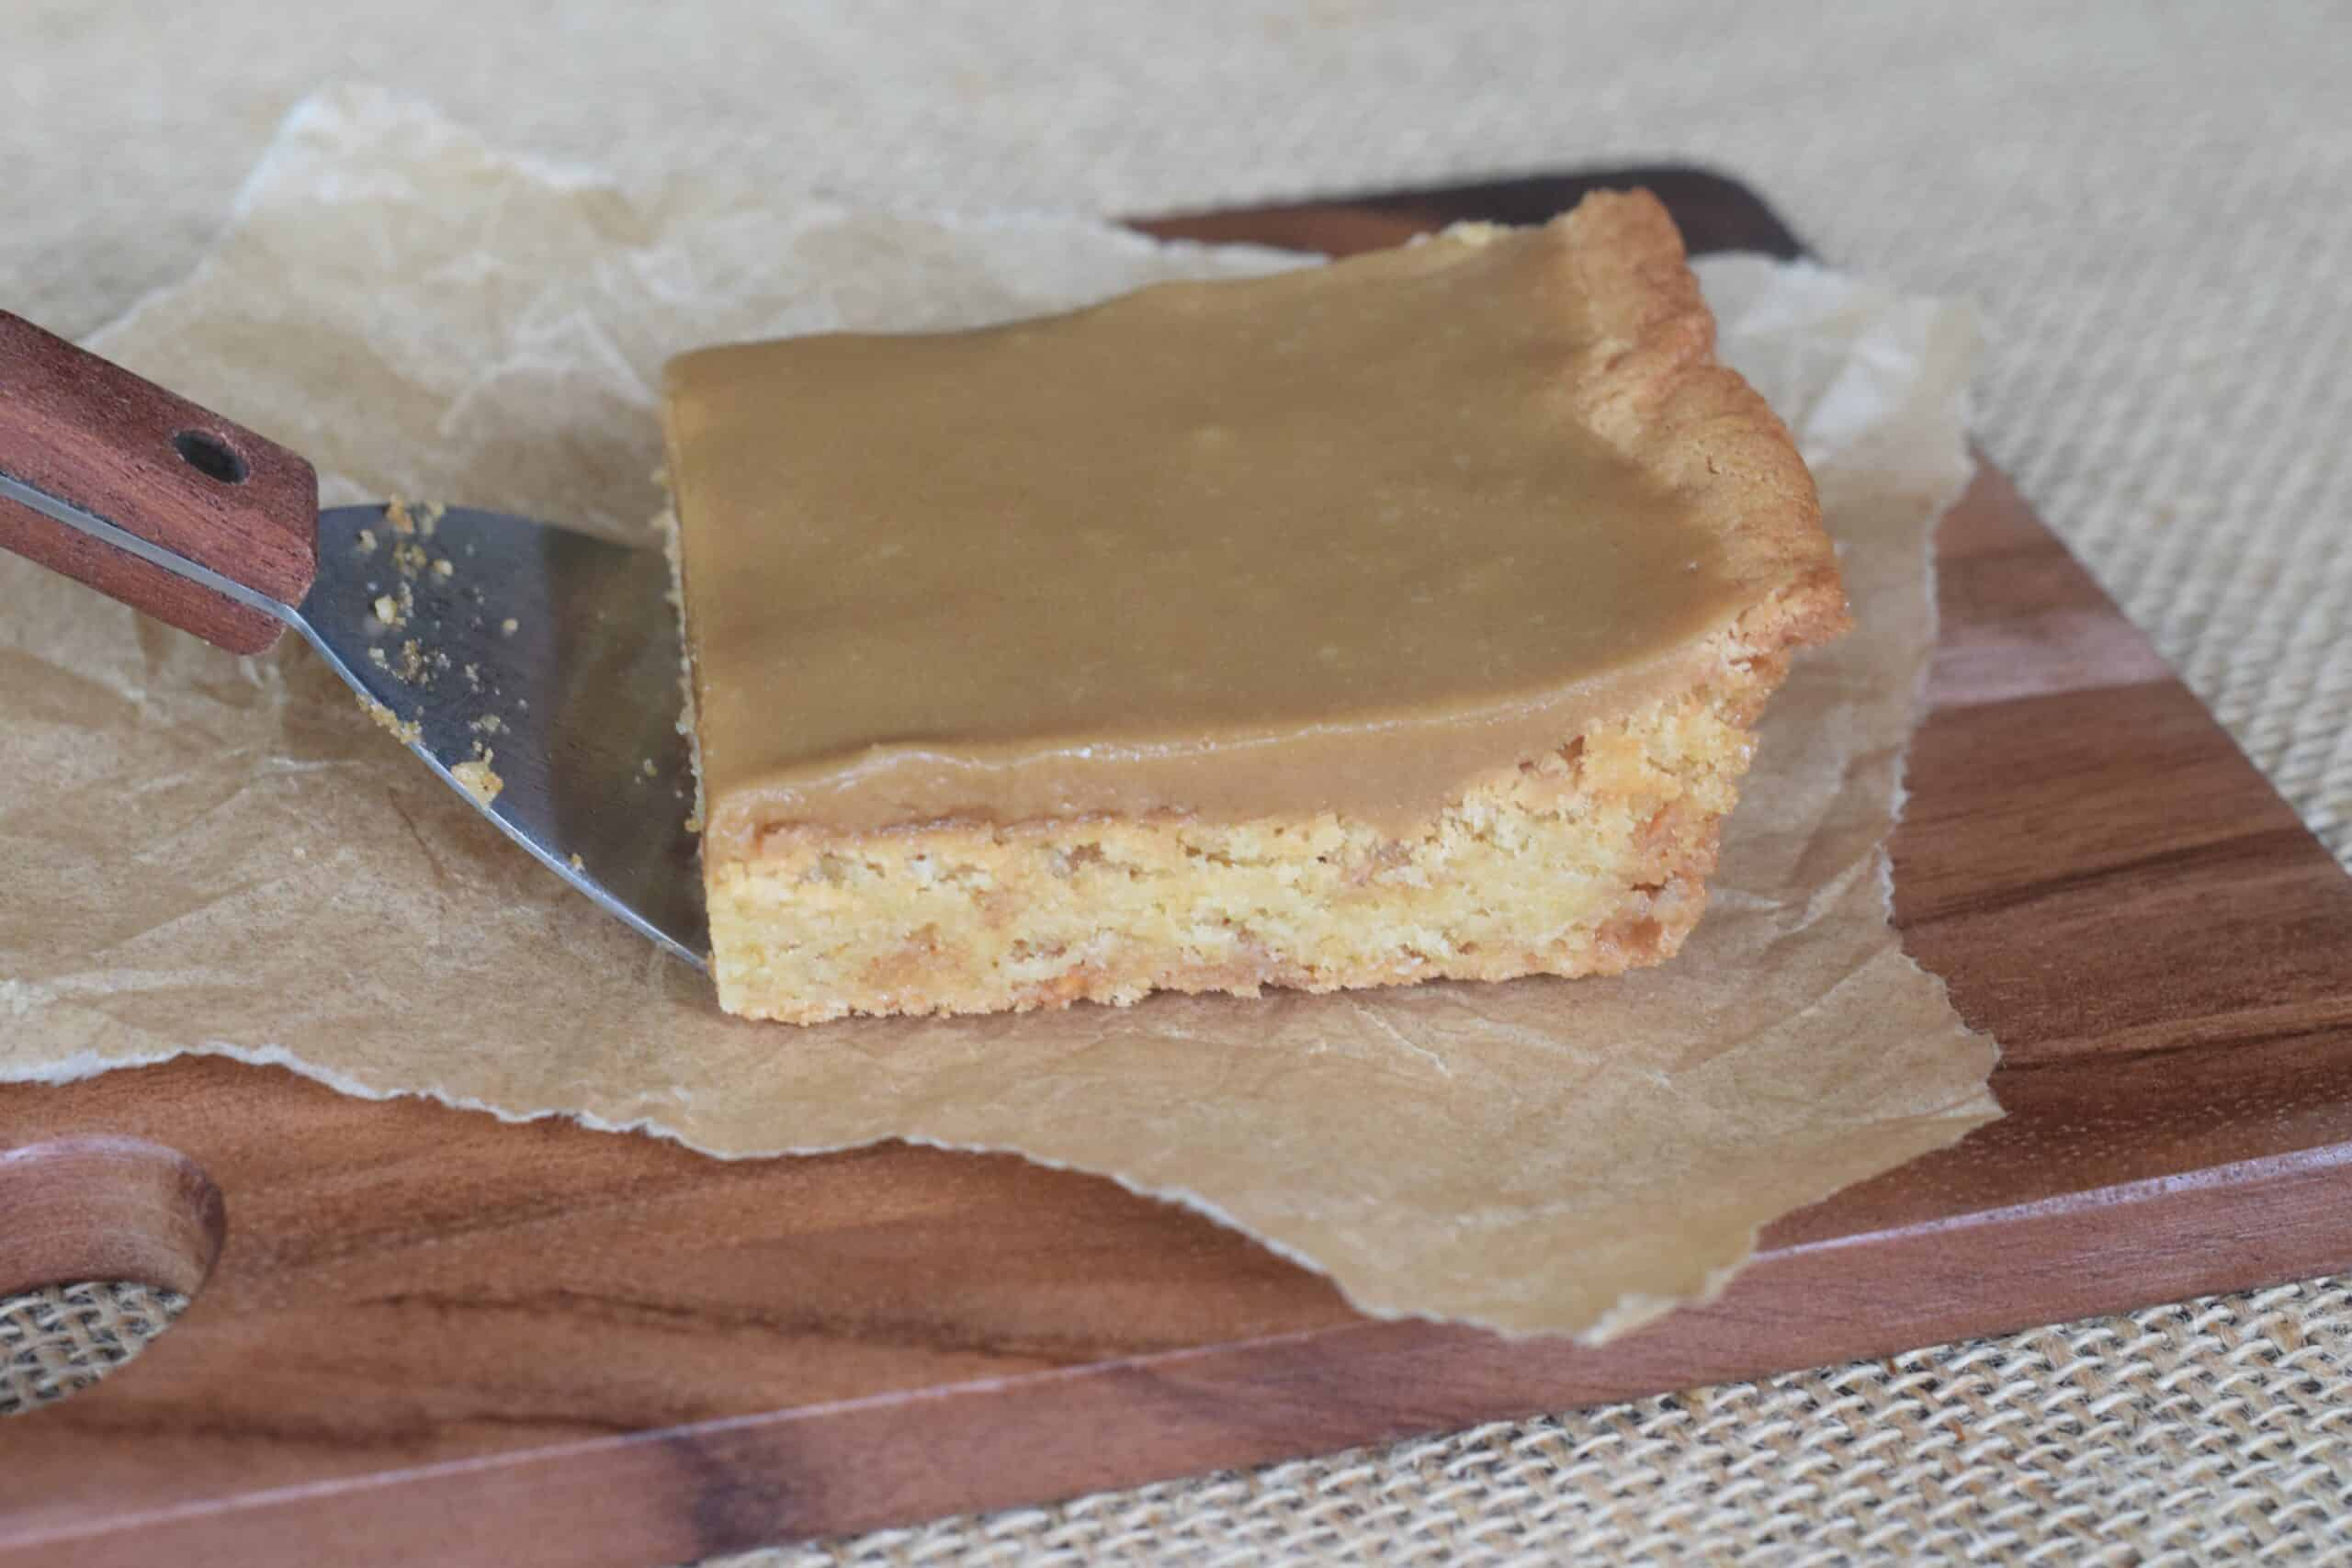 Toffee Blonde Brownies with Cheaters Caramel Icing served on a dark brown wooden cutting board with a metal spatula